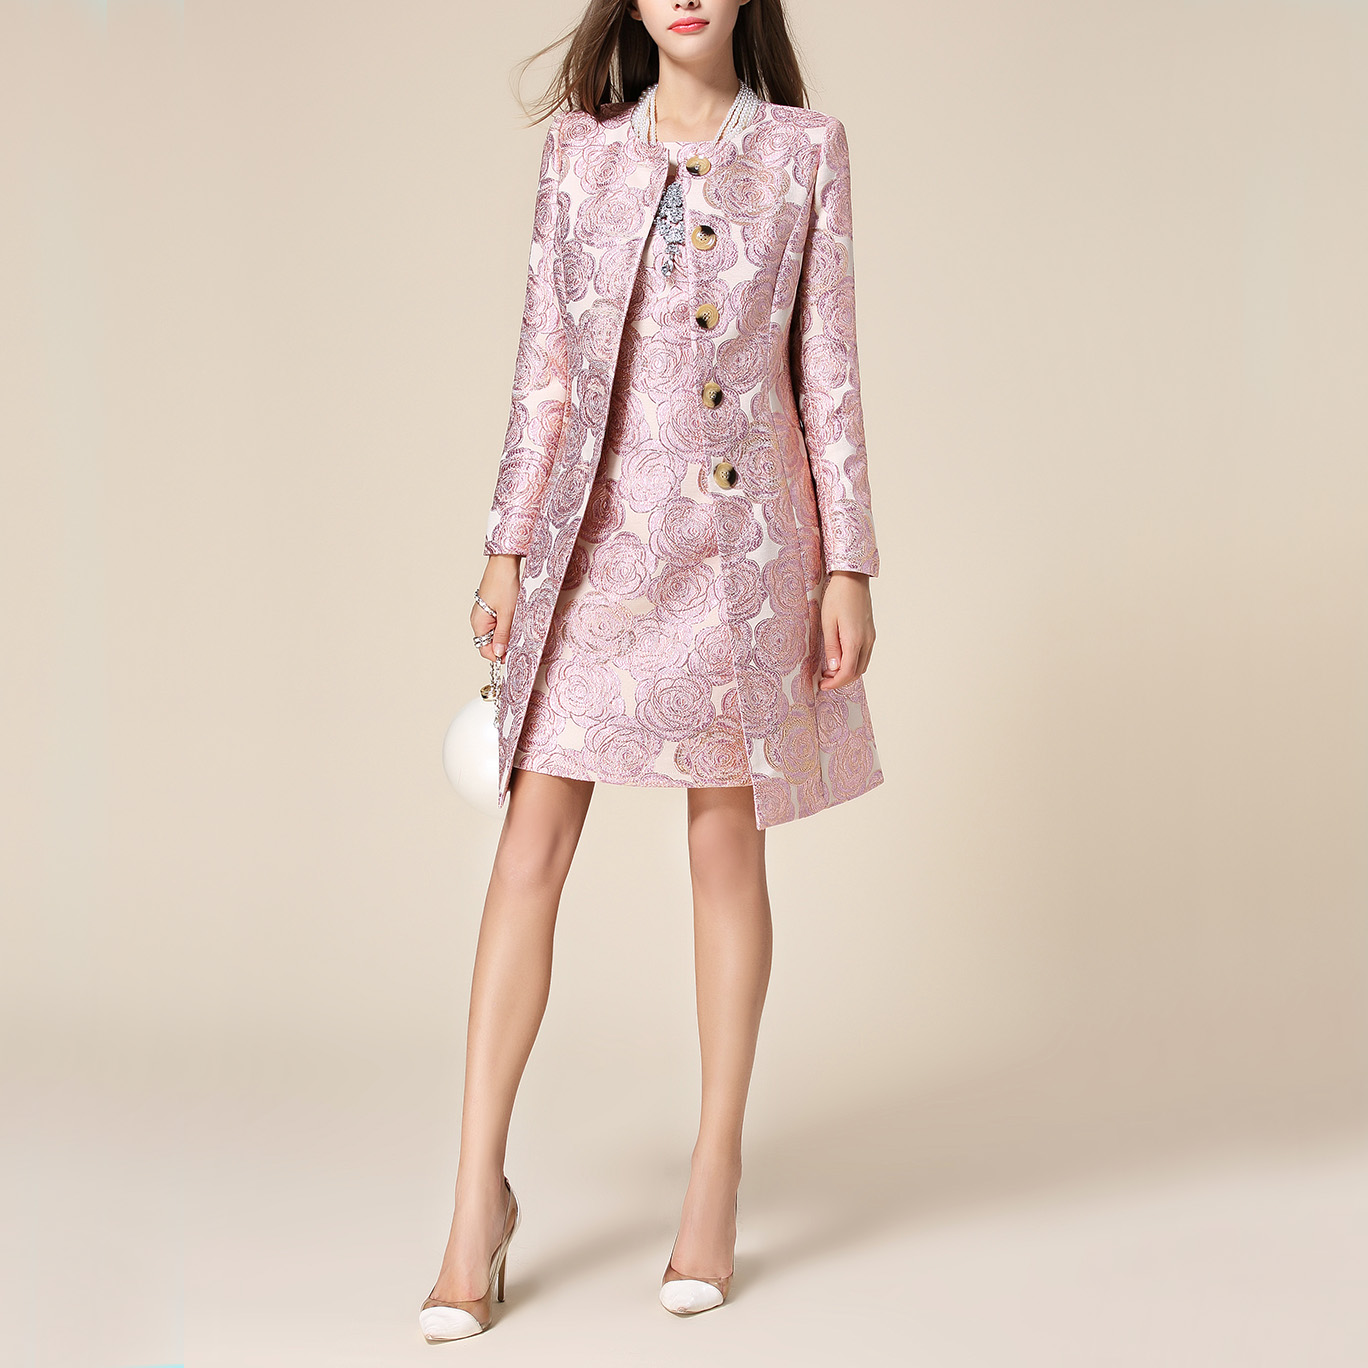 Trench Coat Dresses Promotion-Shop for Promotional Trench Coat ...